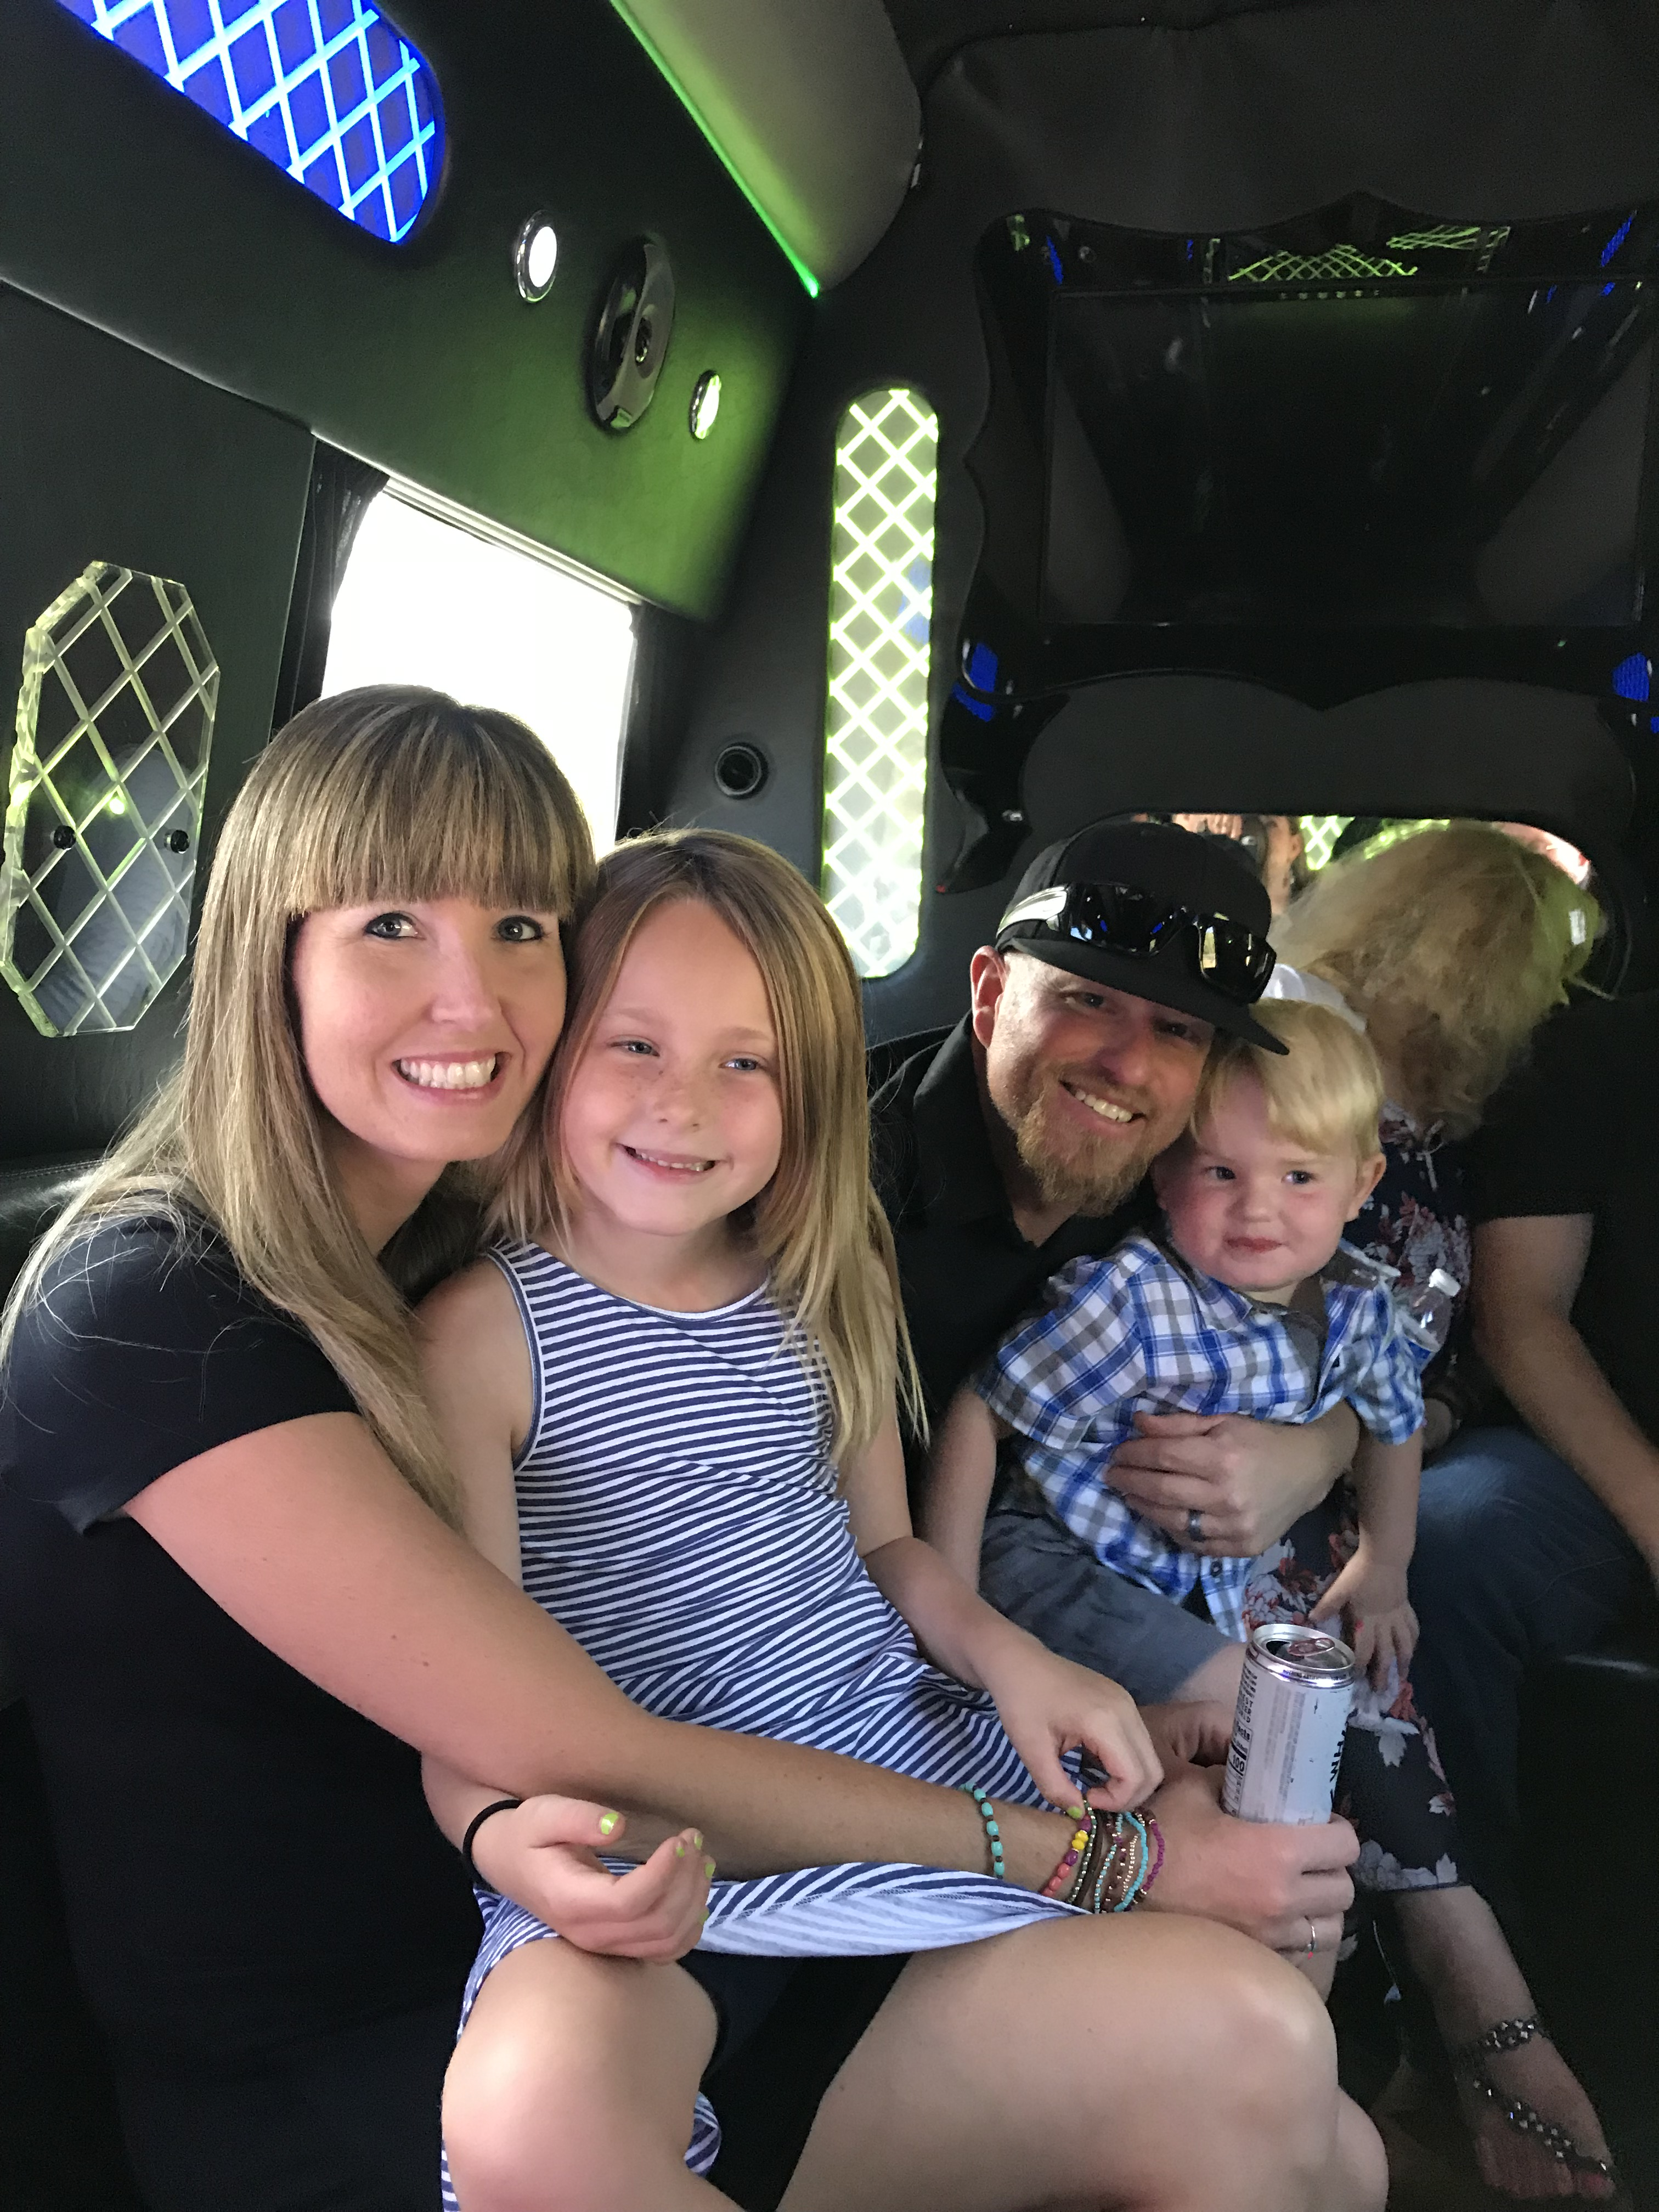 Taking a ride on the All In One Party Bus with the Family